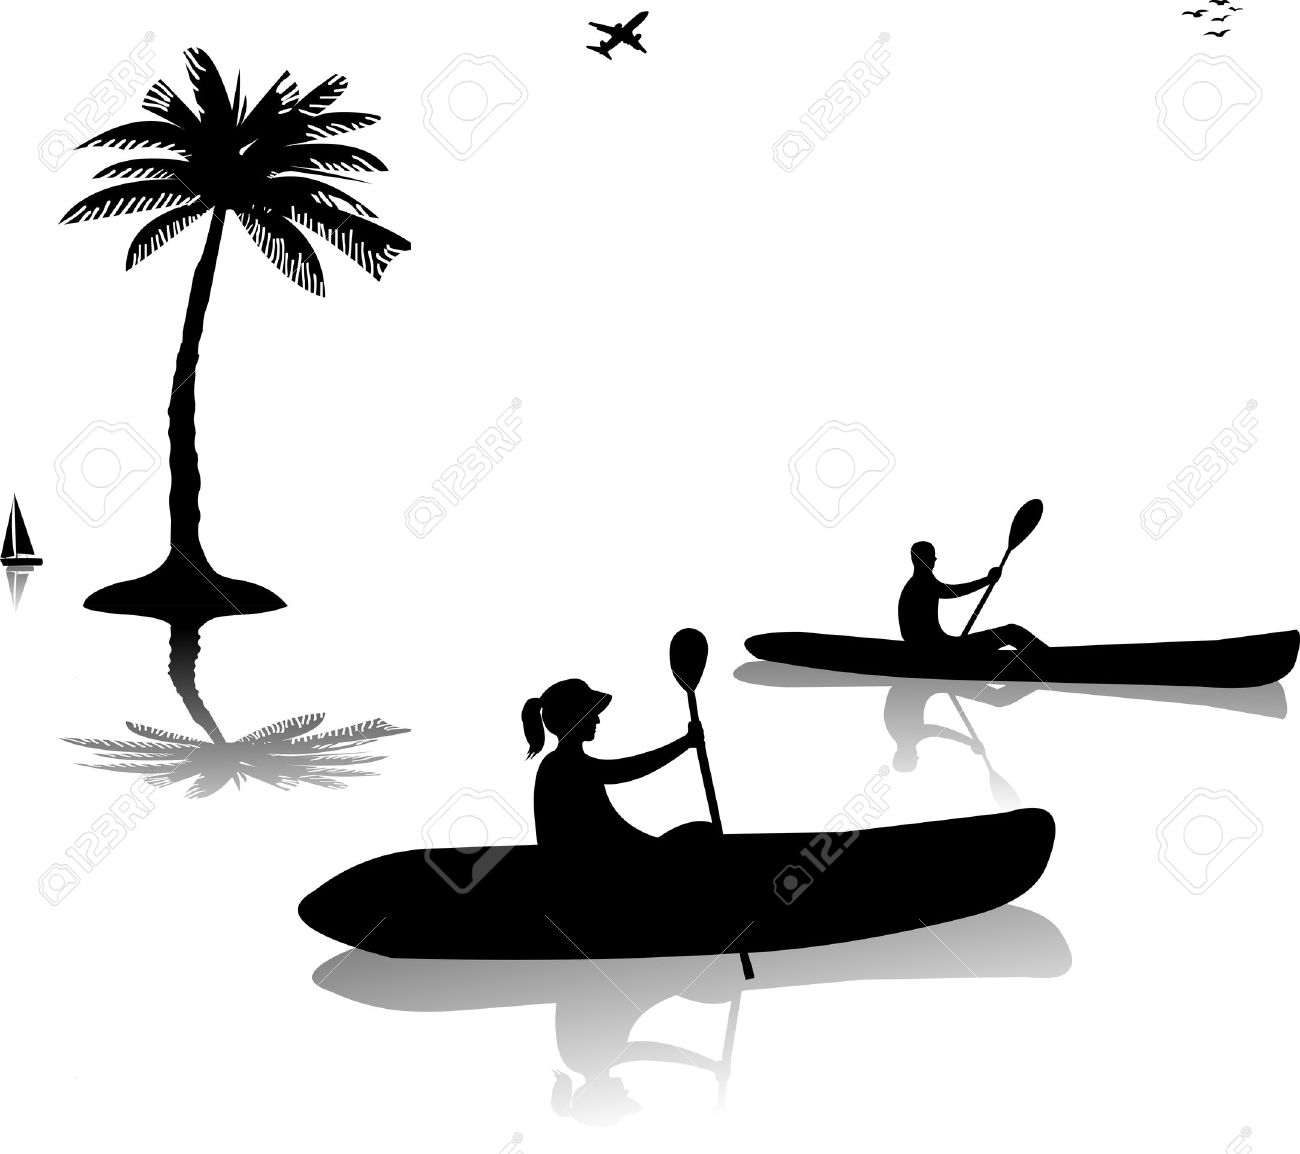 Rafting clipart silhouette Clipart 1 Vector white 559